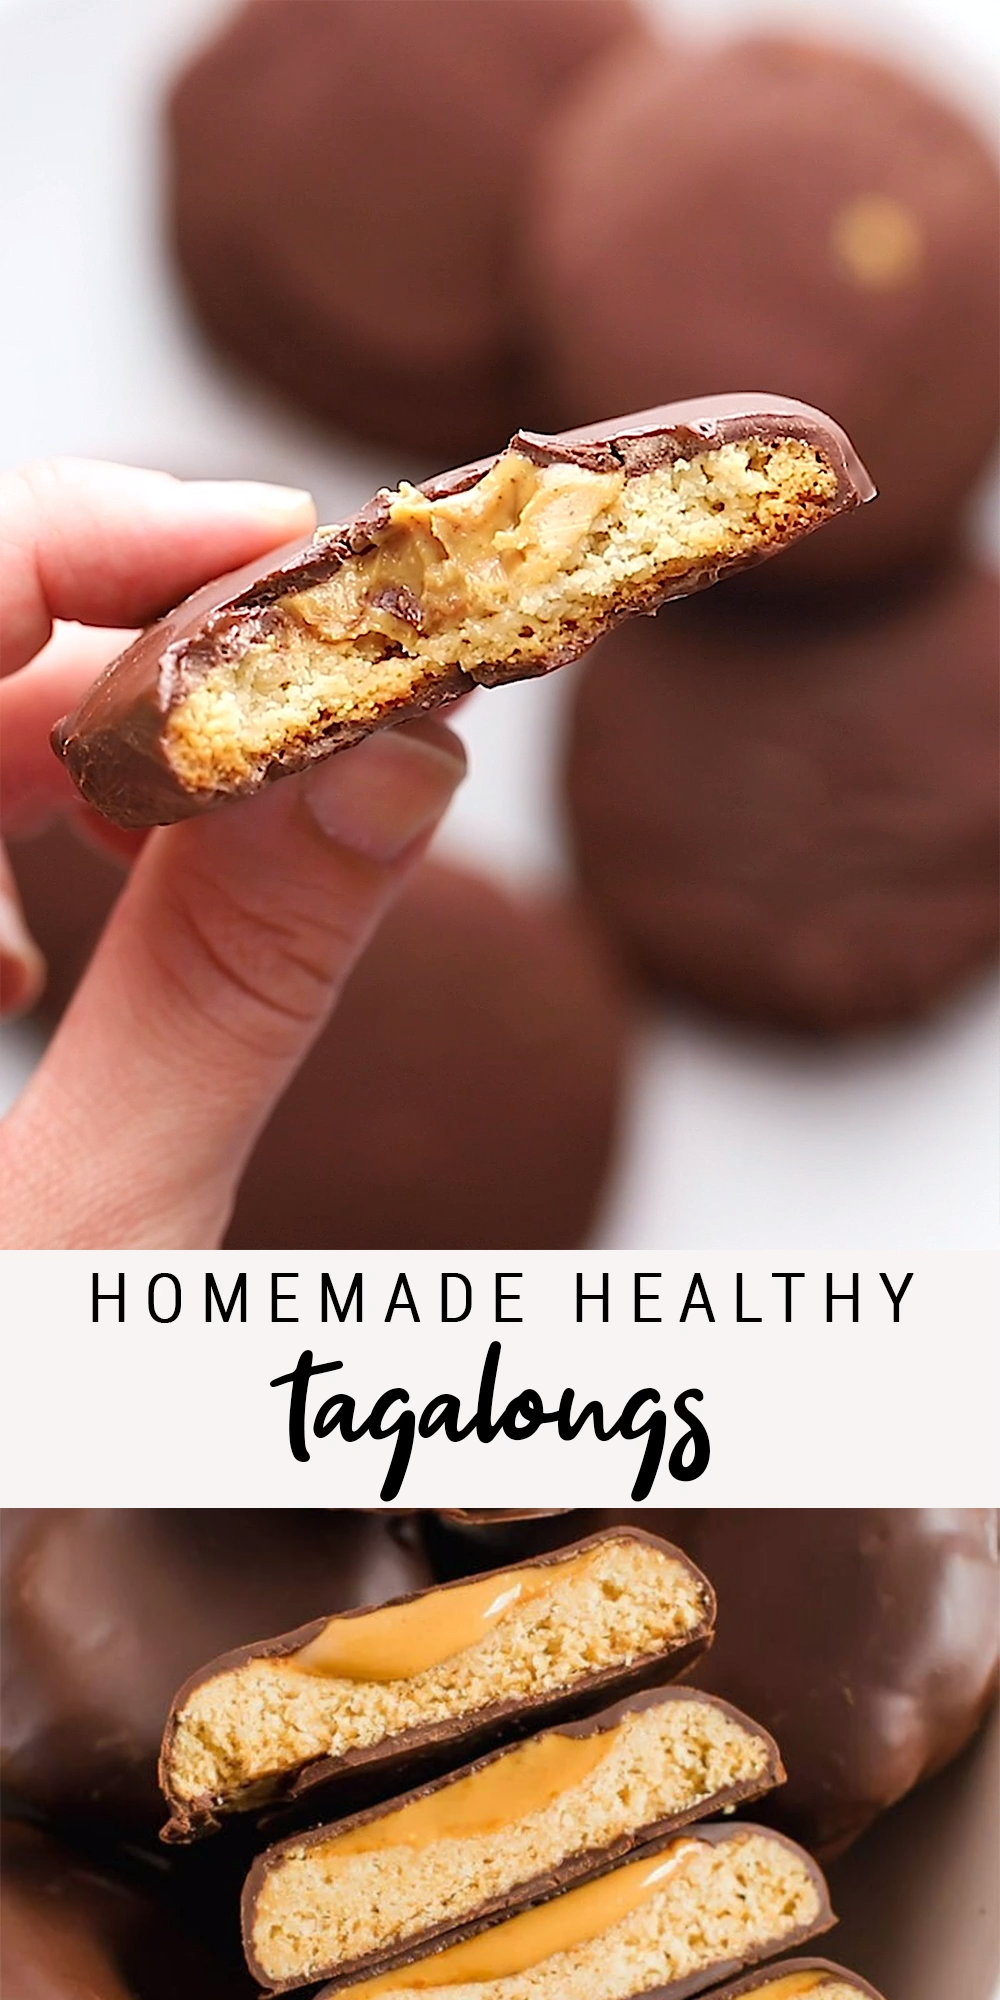 Homemade Healthy Tagalongs  GlutenFree  Vegan Girl Scout Copycat Recipe Make healthy Tagalongs at home with only 7 simple ingredients Were using almond flour cookies pean...